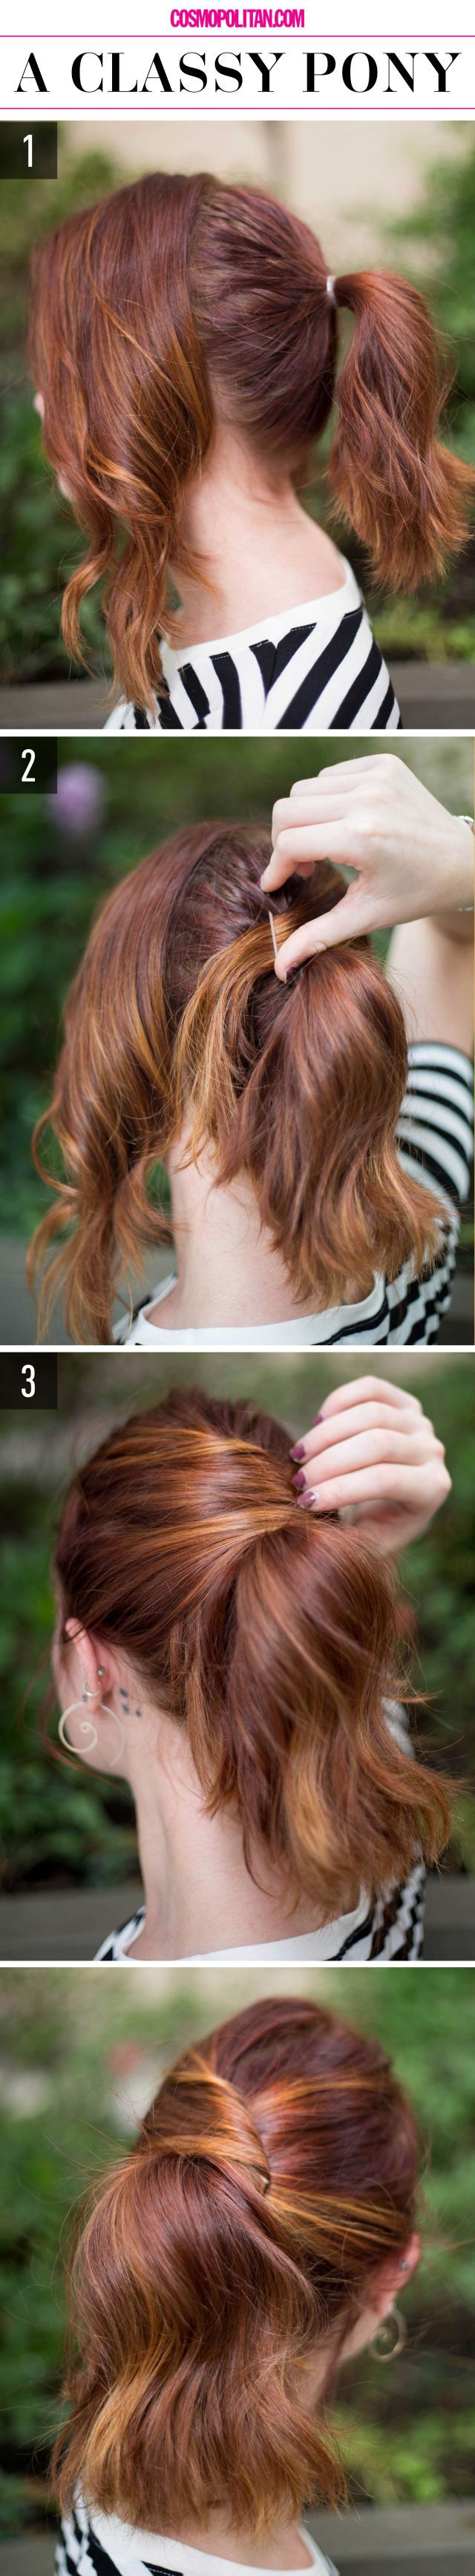 super-easy hairstyles lazy